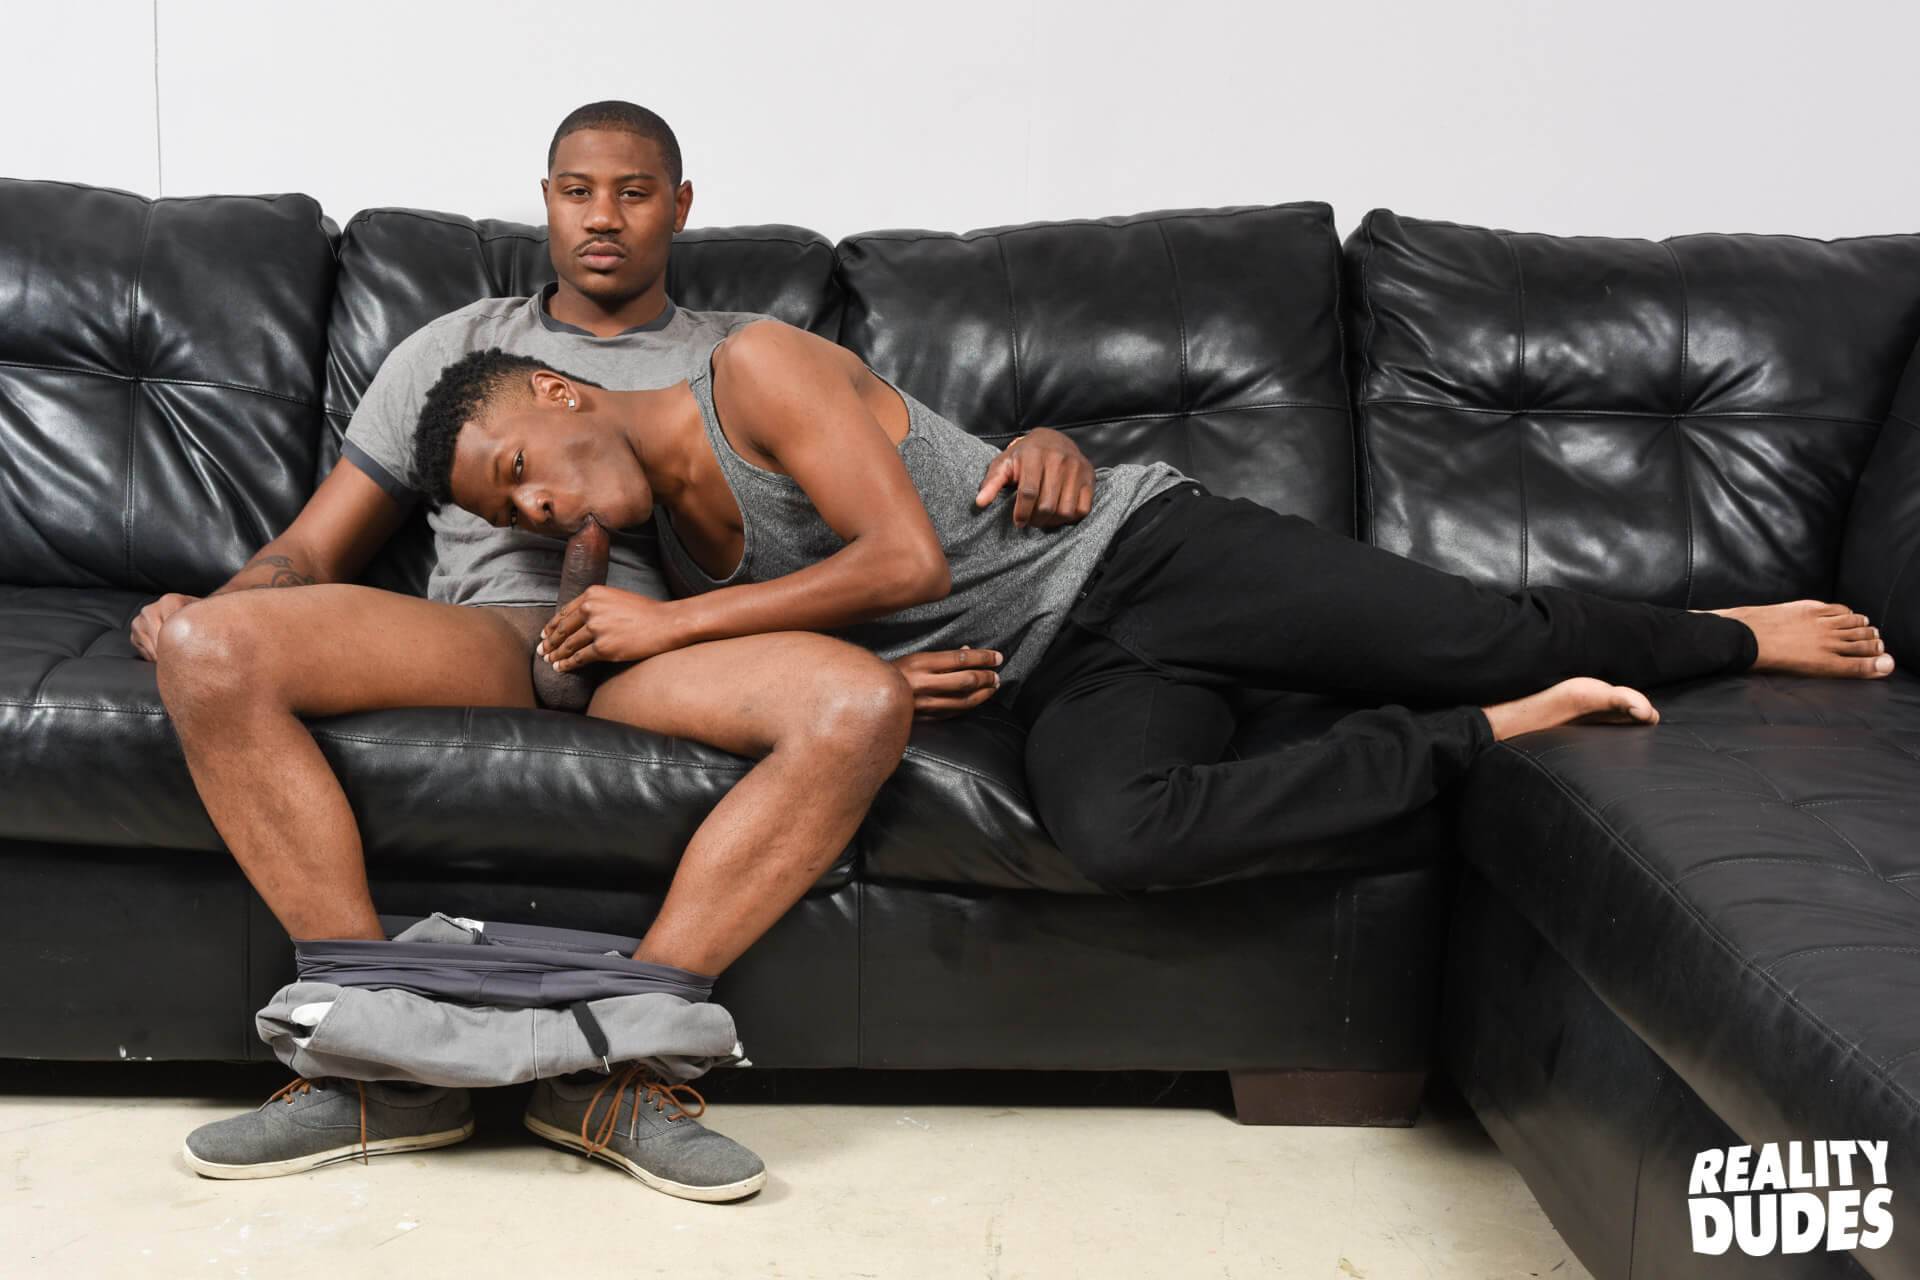 reality dudes reality thugs adonis couverture kylan gay porn blog image 26